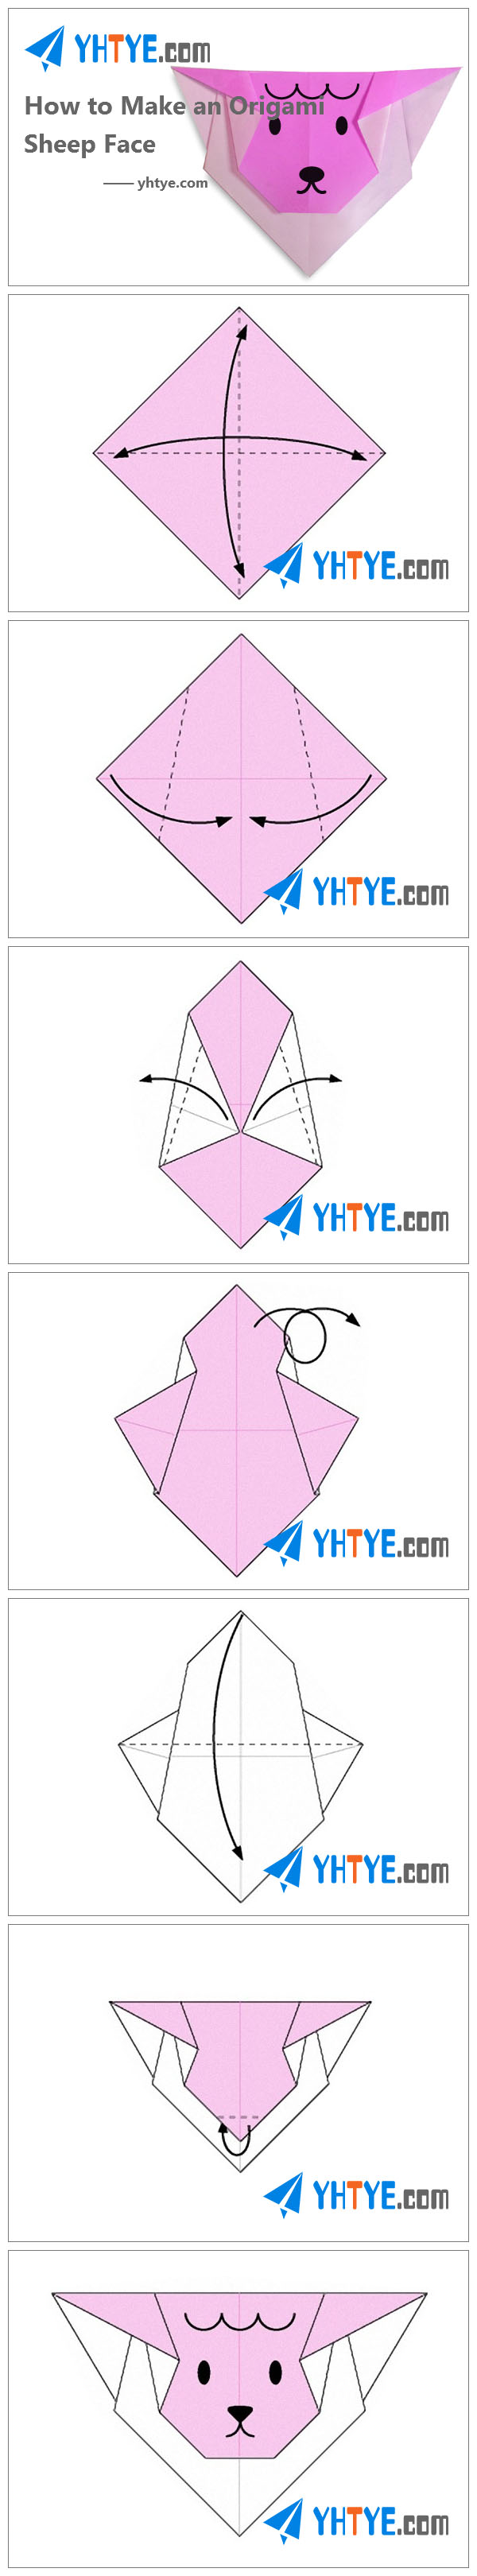 How to Make an Origami Sheep Face Origami instructions